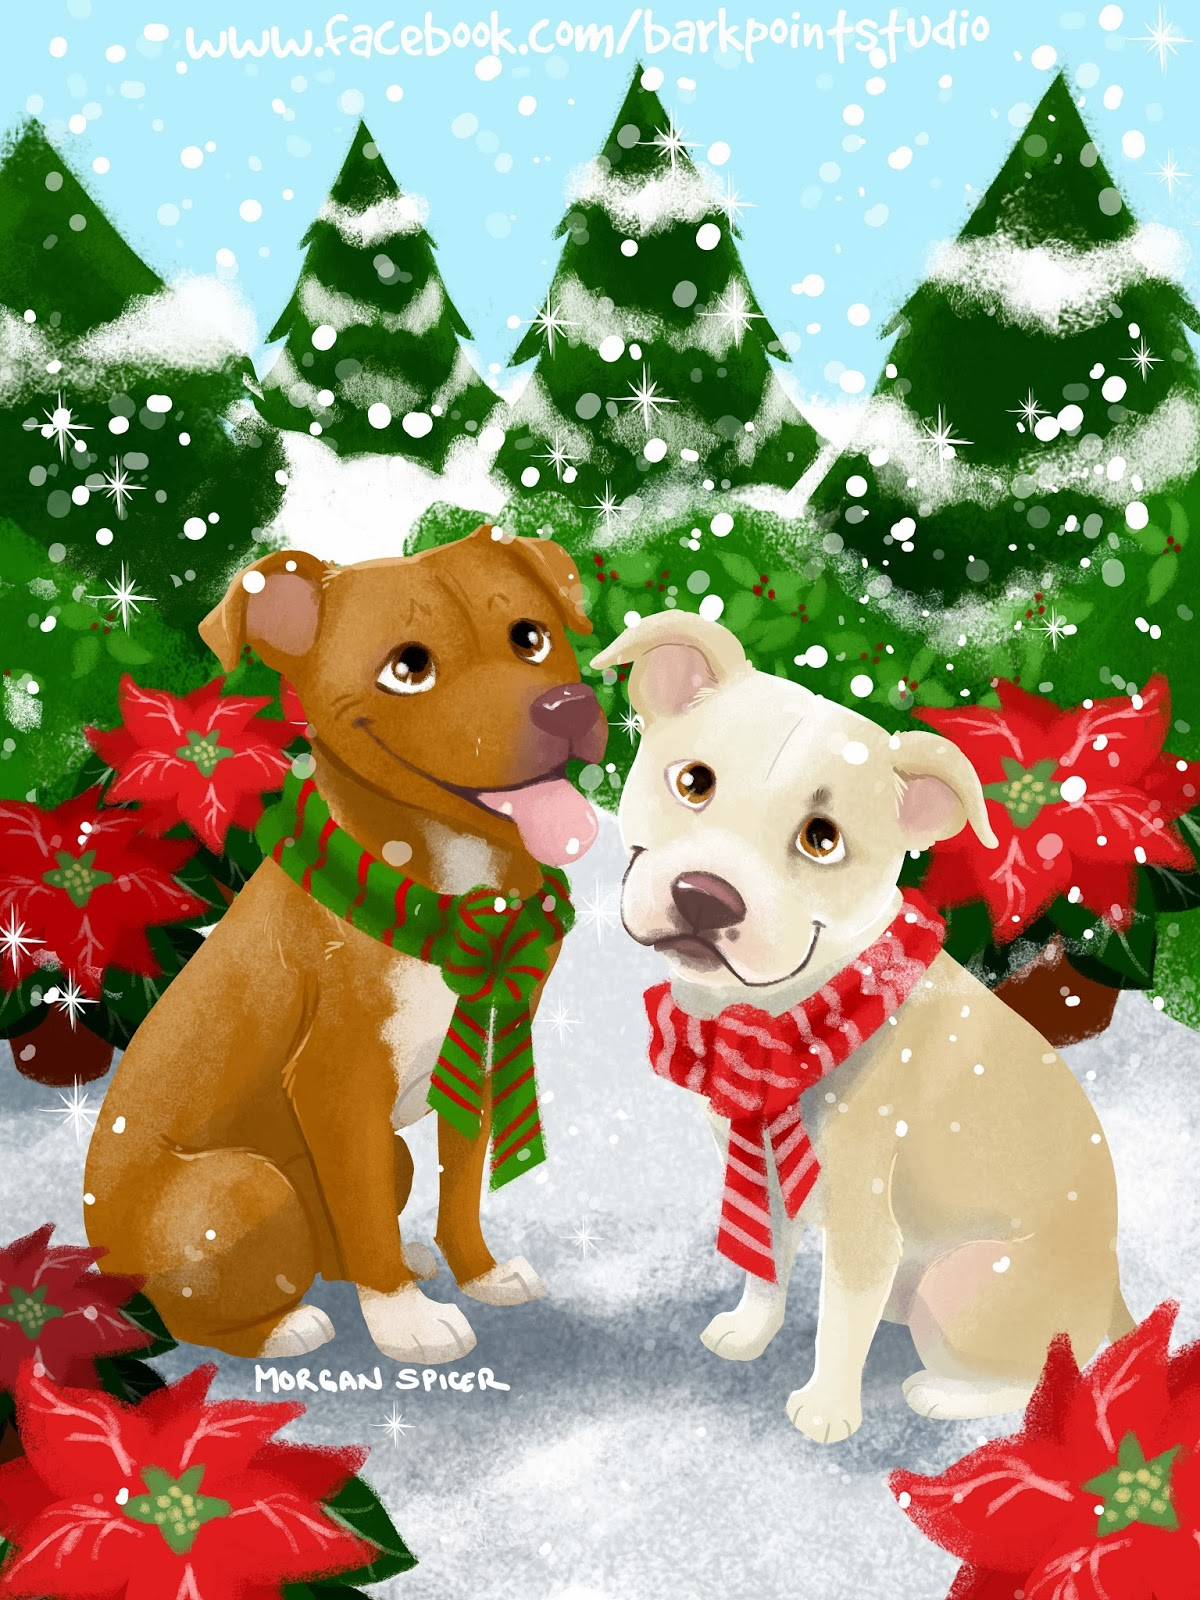 Holiday Themed Cards & Caricatures | Bark Point Studio